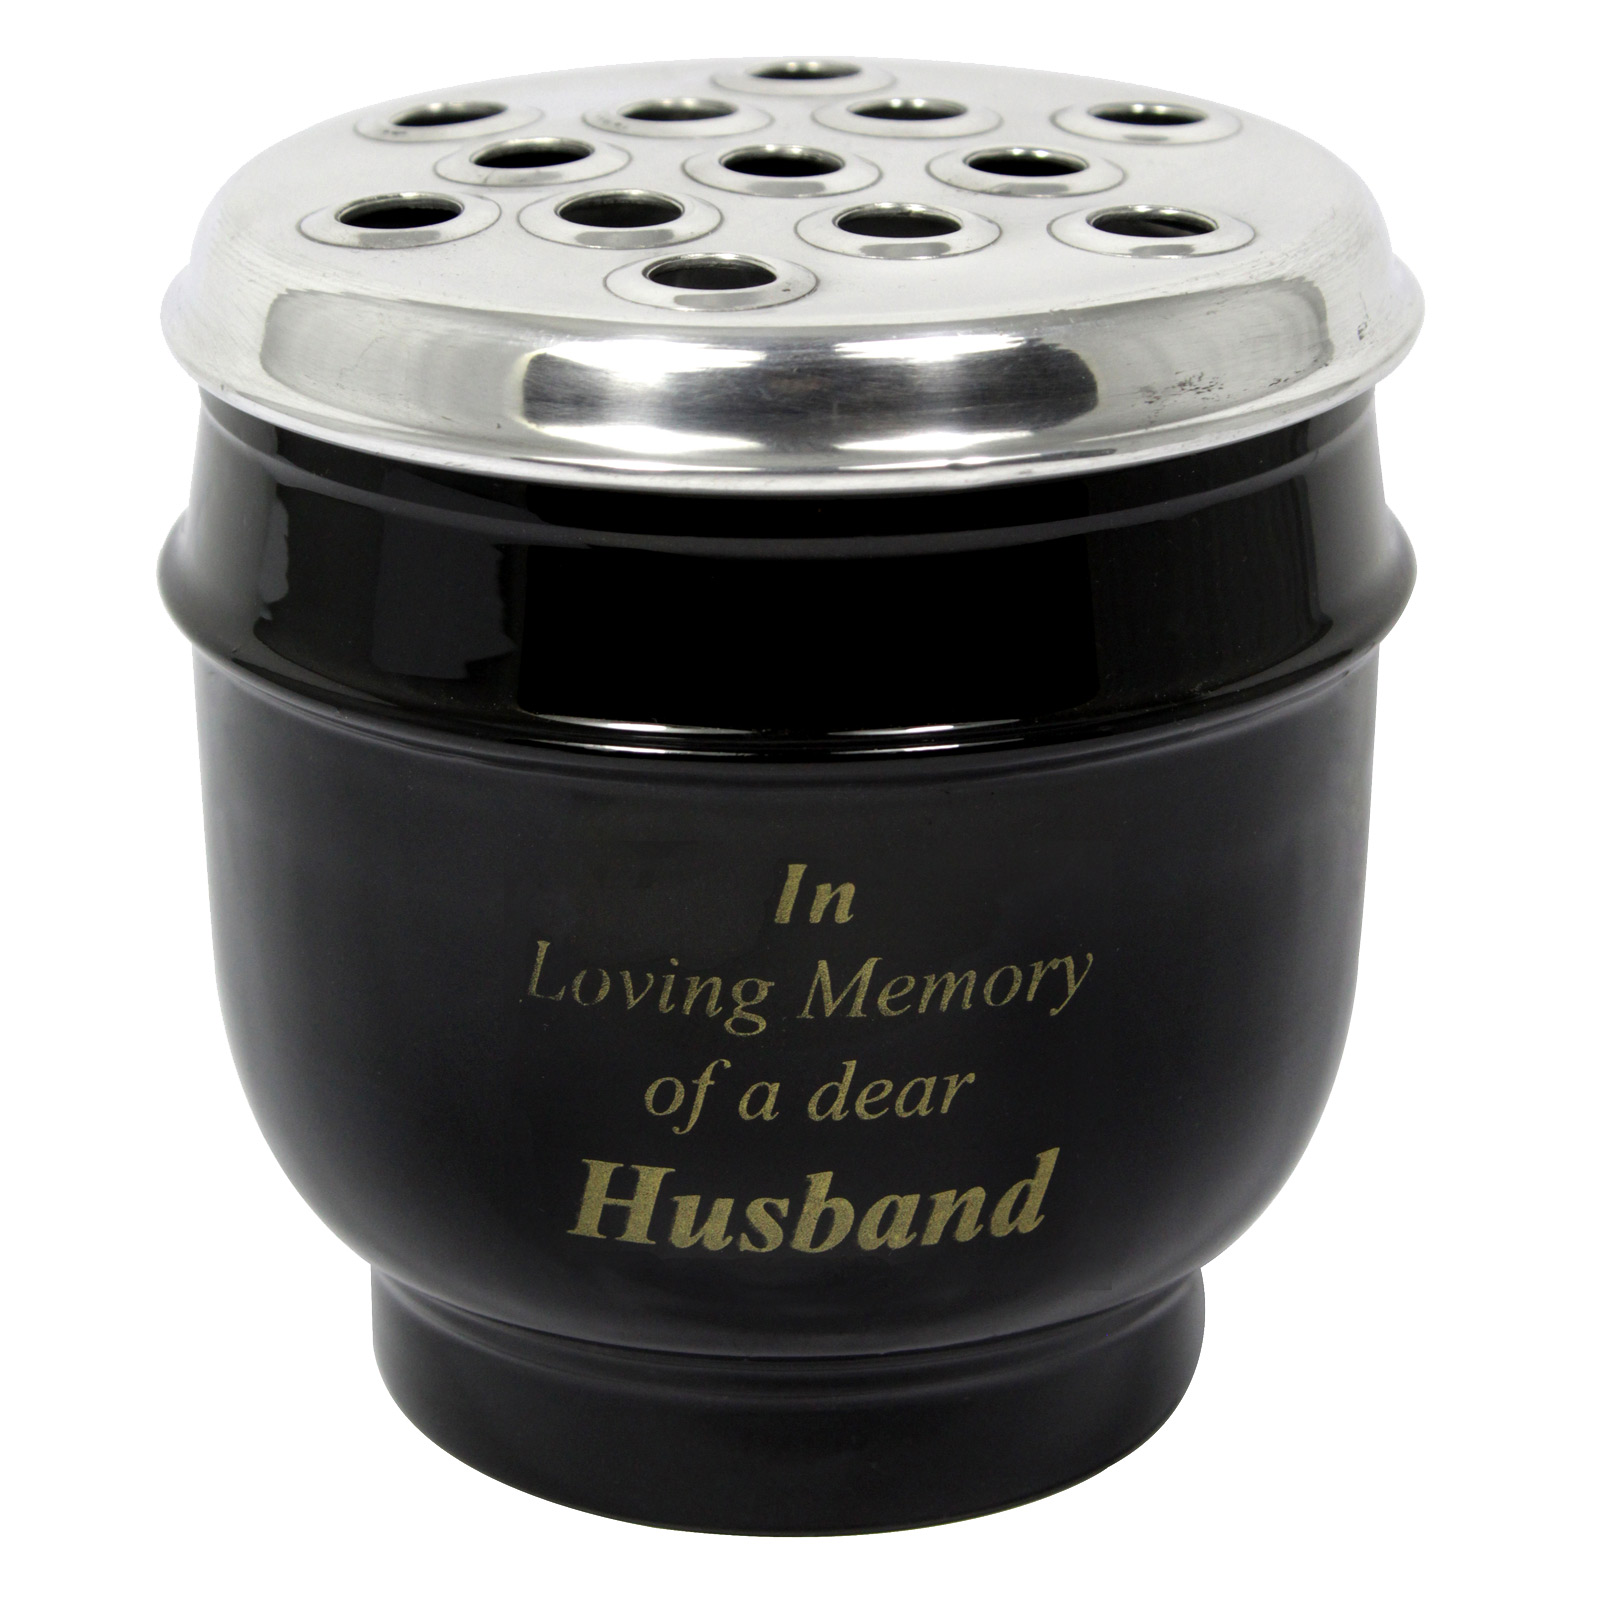 METAL GRAVE VASE BLACK WITH SILVER LID IN LOVING MEMORY OF A DEAR HUSBAND 14CM